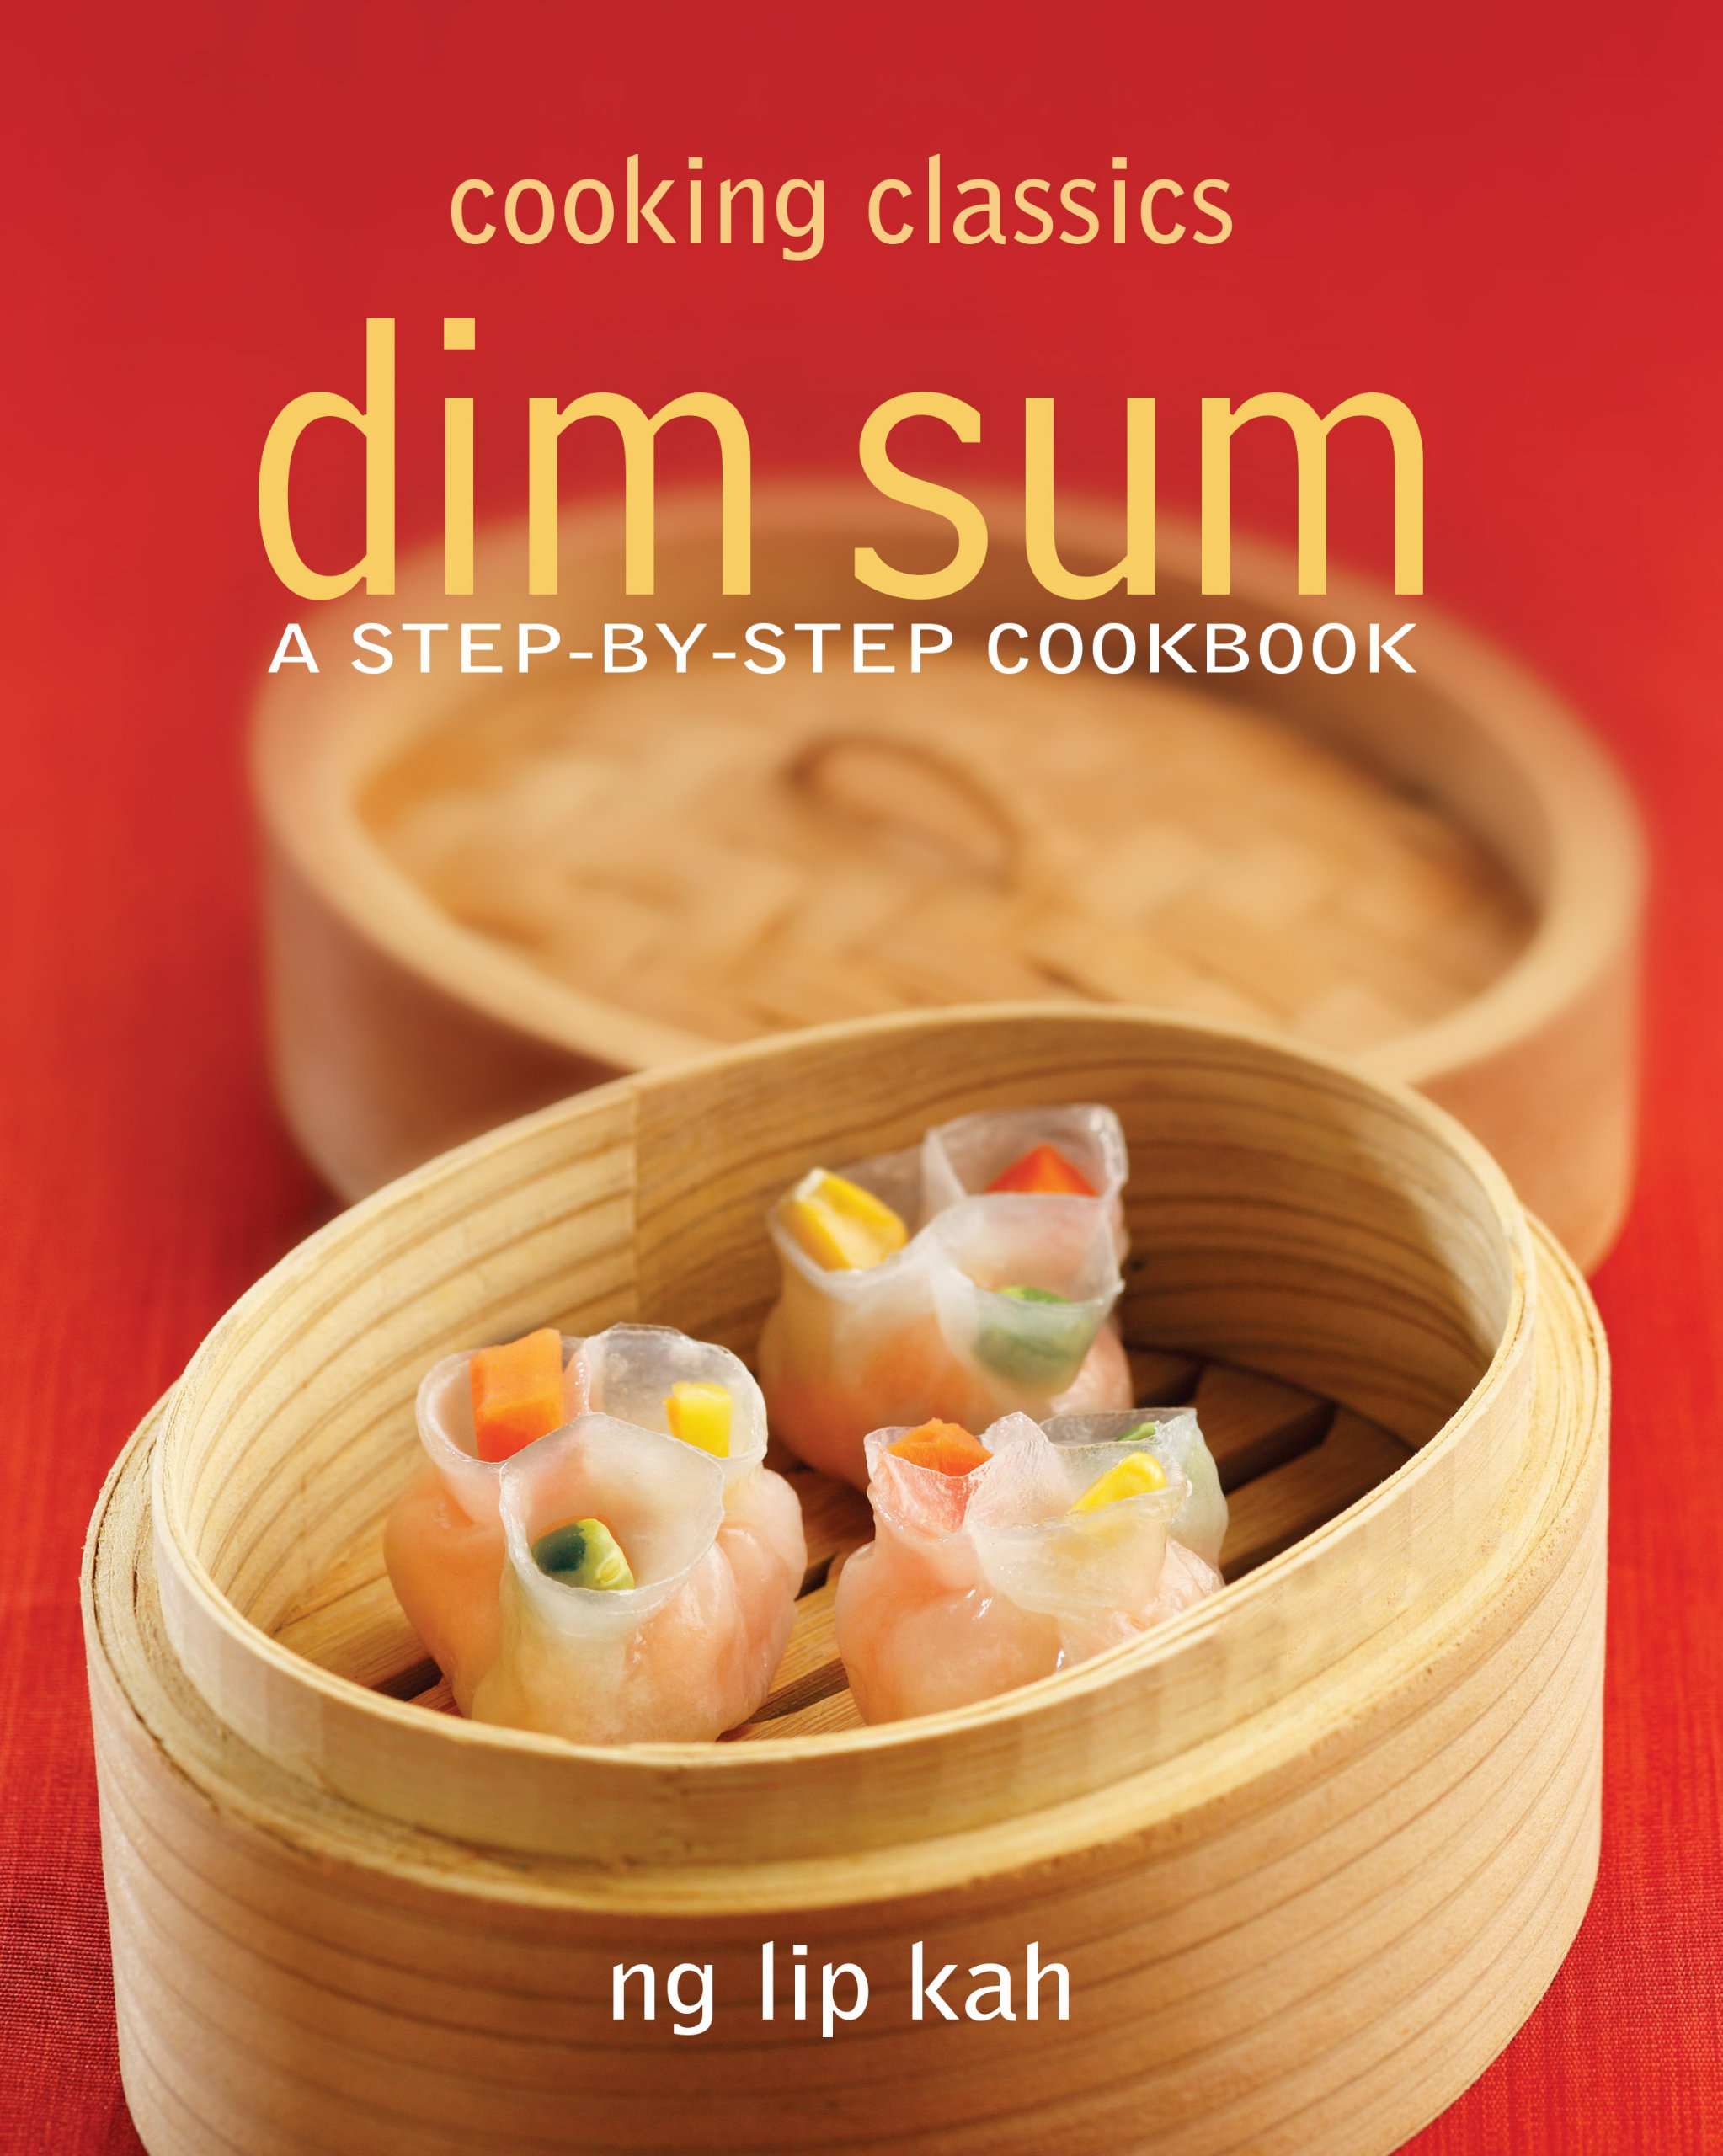 Cooking classics dim sum a step by step cookbook ng lip kah cooking classics dim sum a step by step cookbook ng lip kah 9789814516297 amazon books forumfinder Choice Image